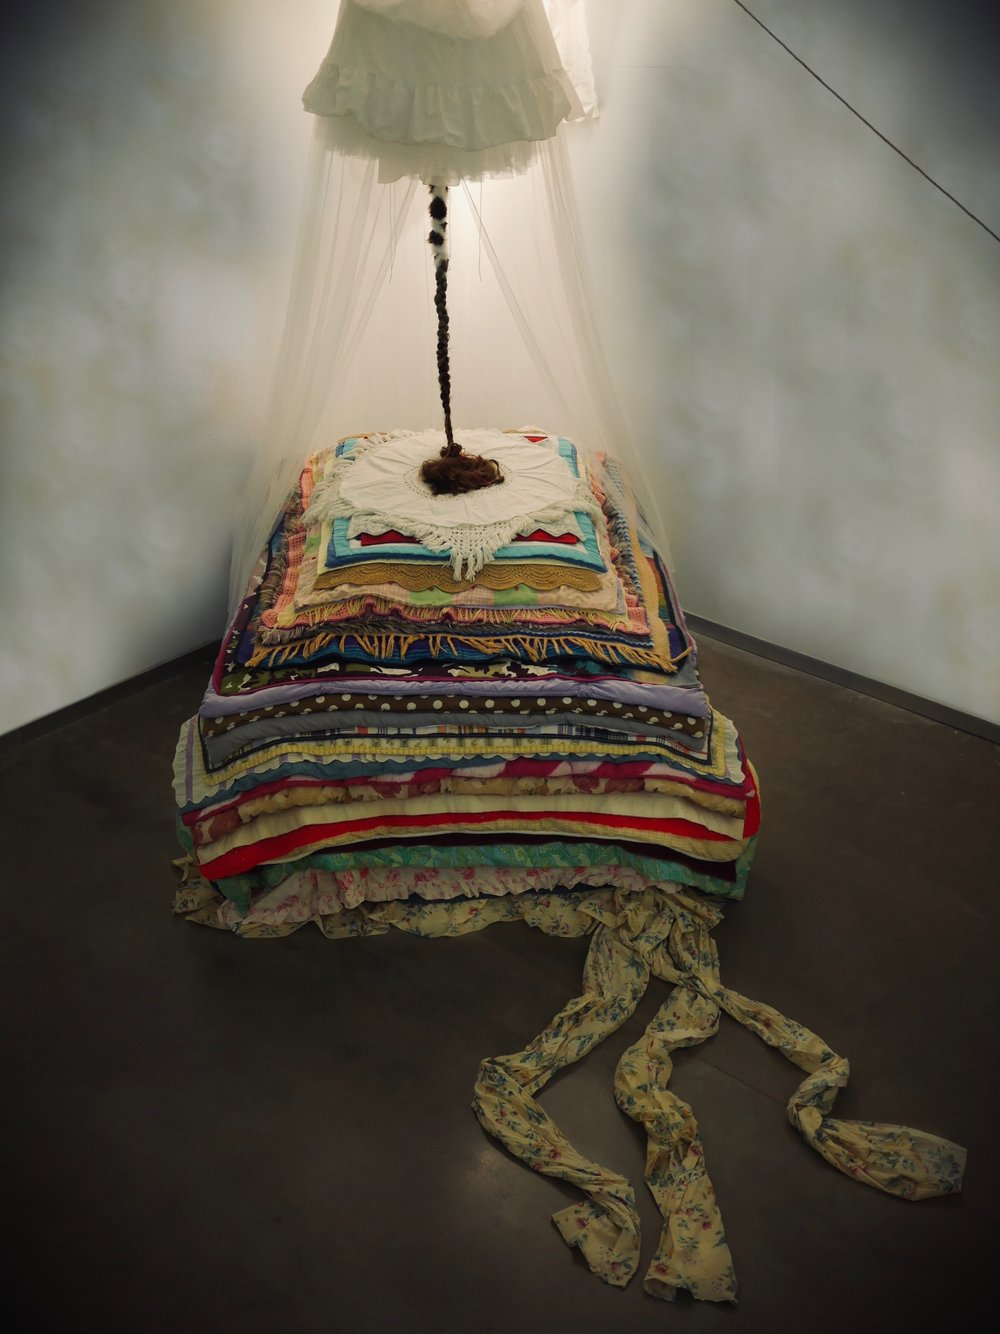 """Her Boredom Is Exquisite and Excessive. In Her Is The End of Breeding.   128"""" x 204"""" x 228"""" - dimensions variable  Shadow wallpaper, 197 pounds of used blankets, my mother's hair, lace, crinoline underskirt, fur, mosquito netting, scent of oak moss  (2018)"""